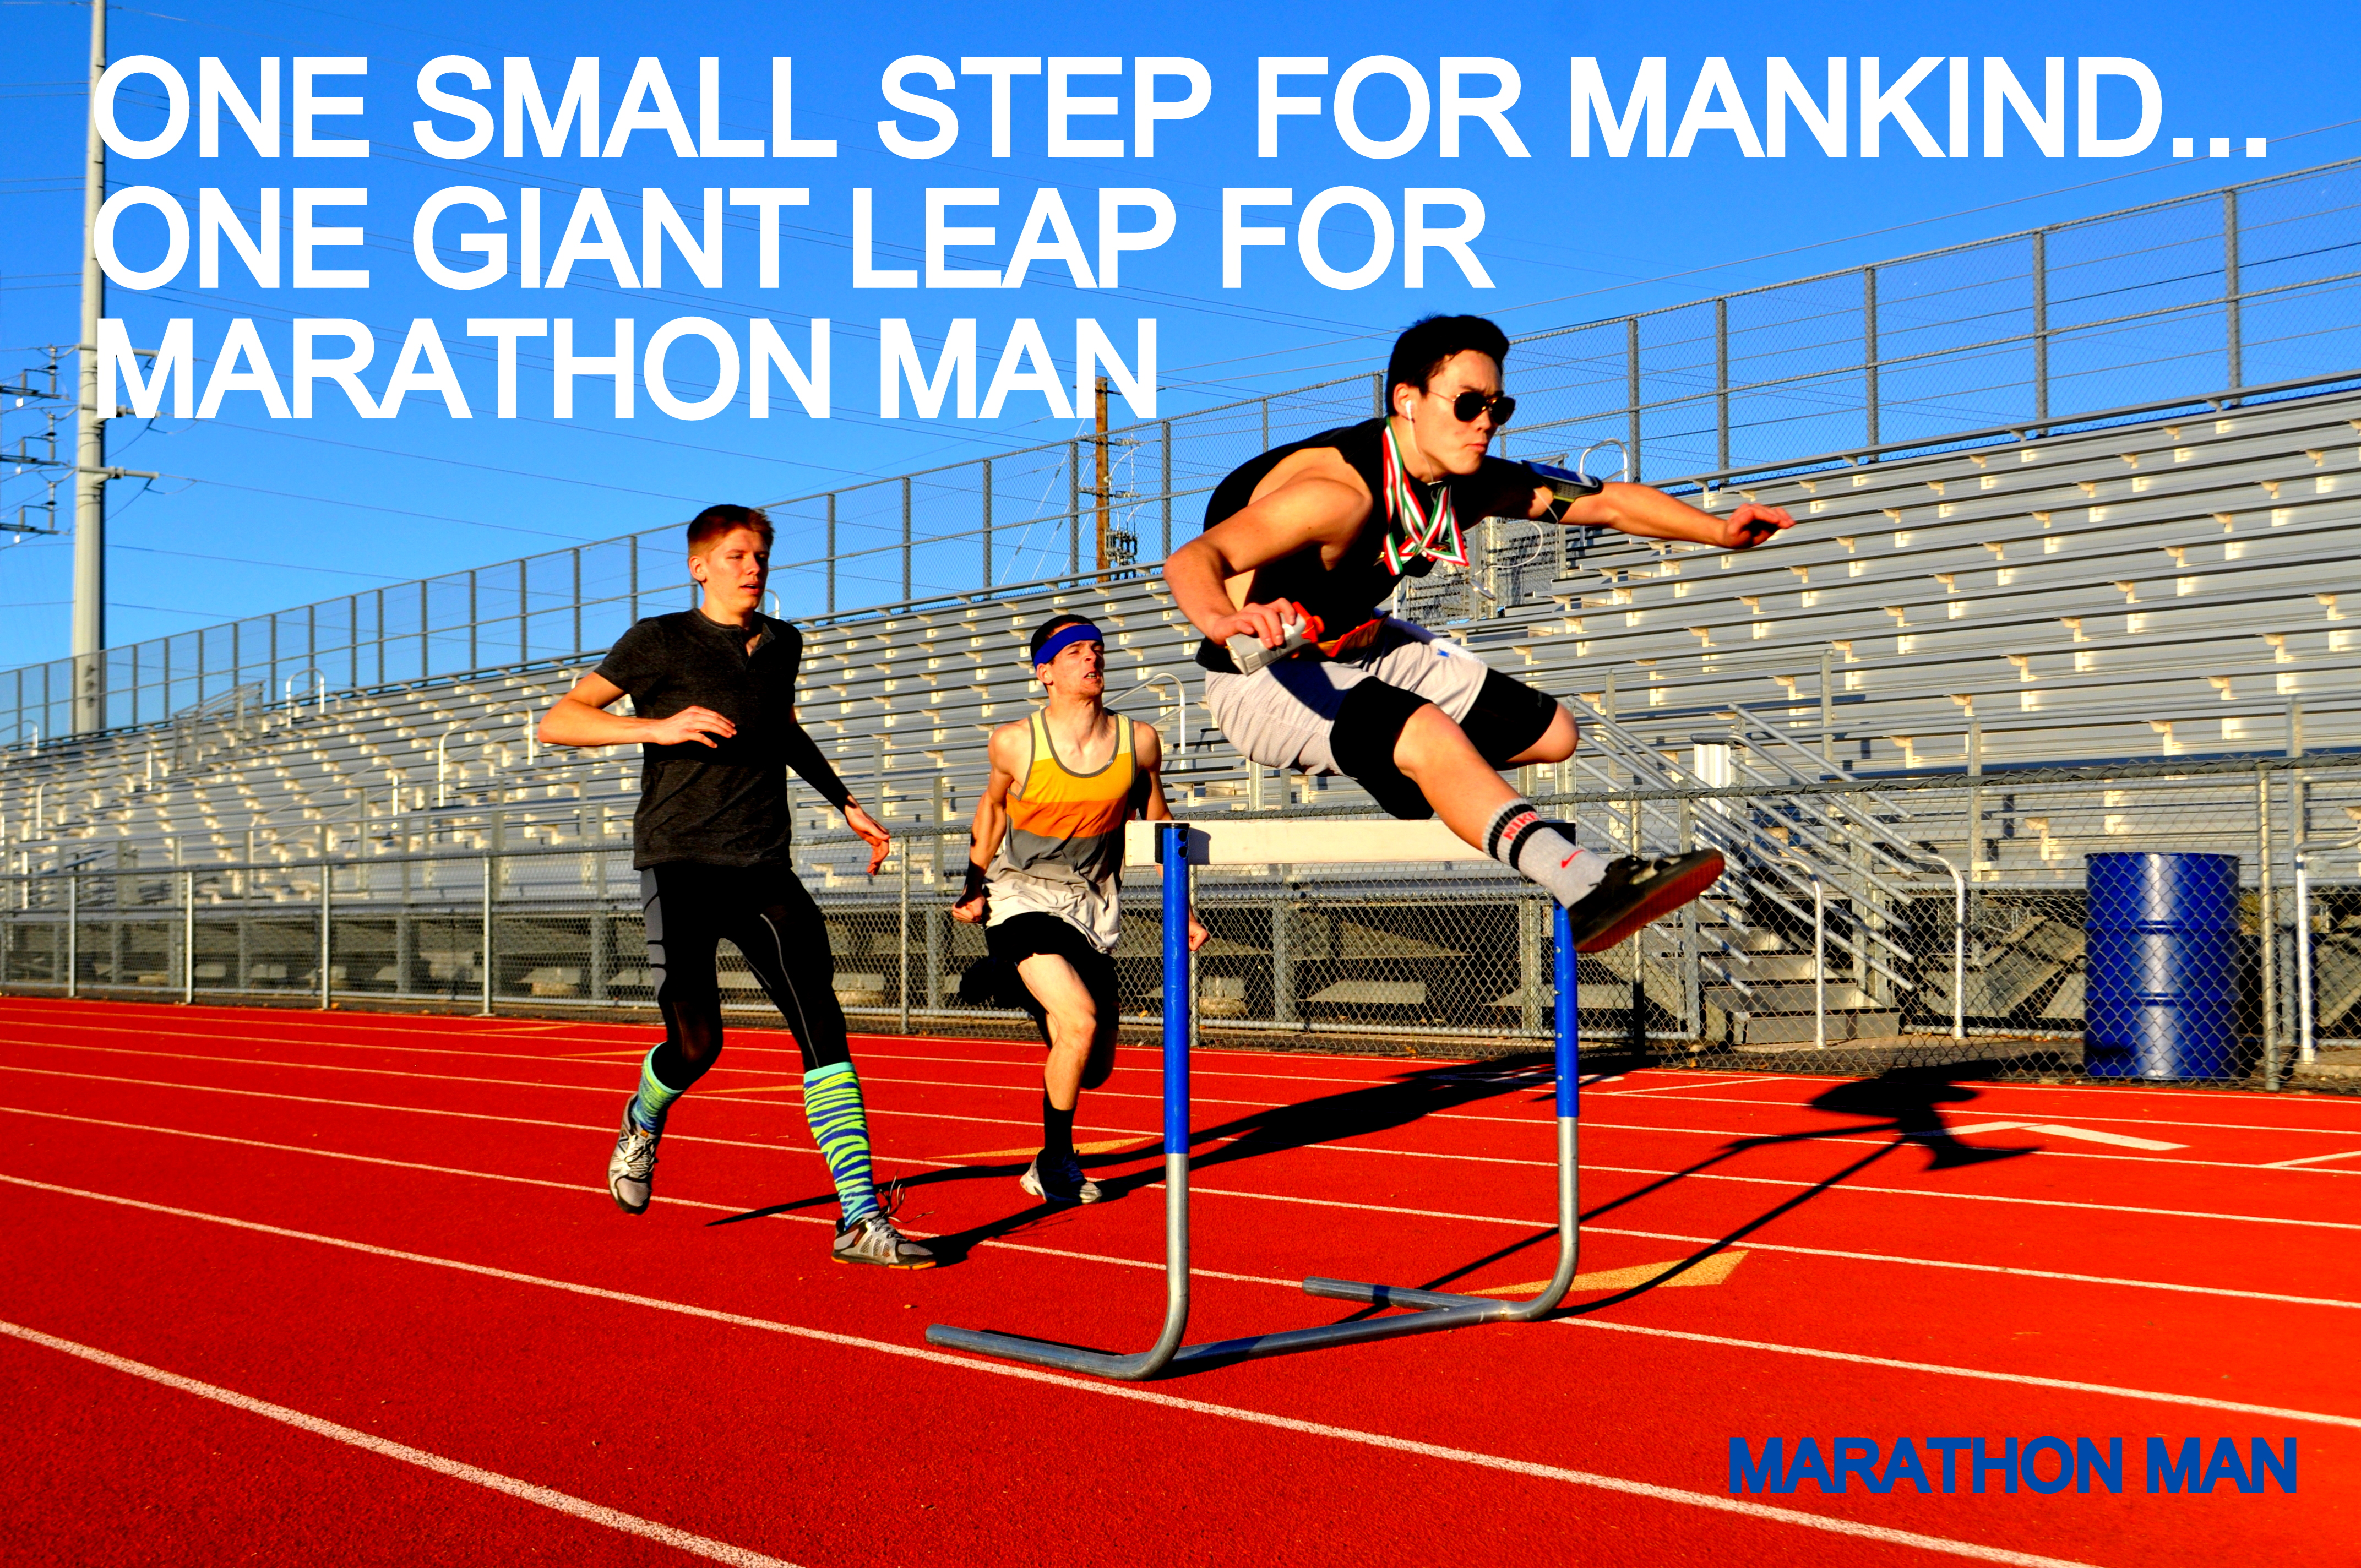 One Small Step For Mankind... One Giant Leap For Marathon Man